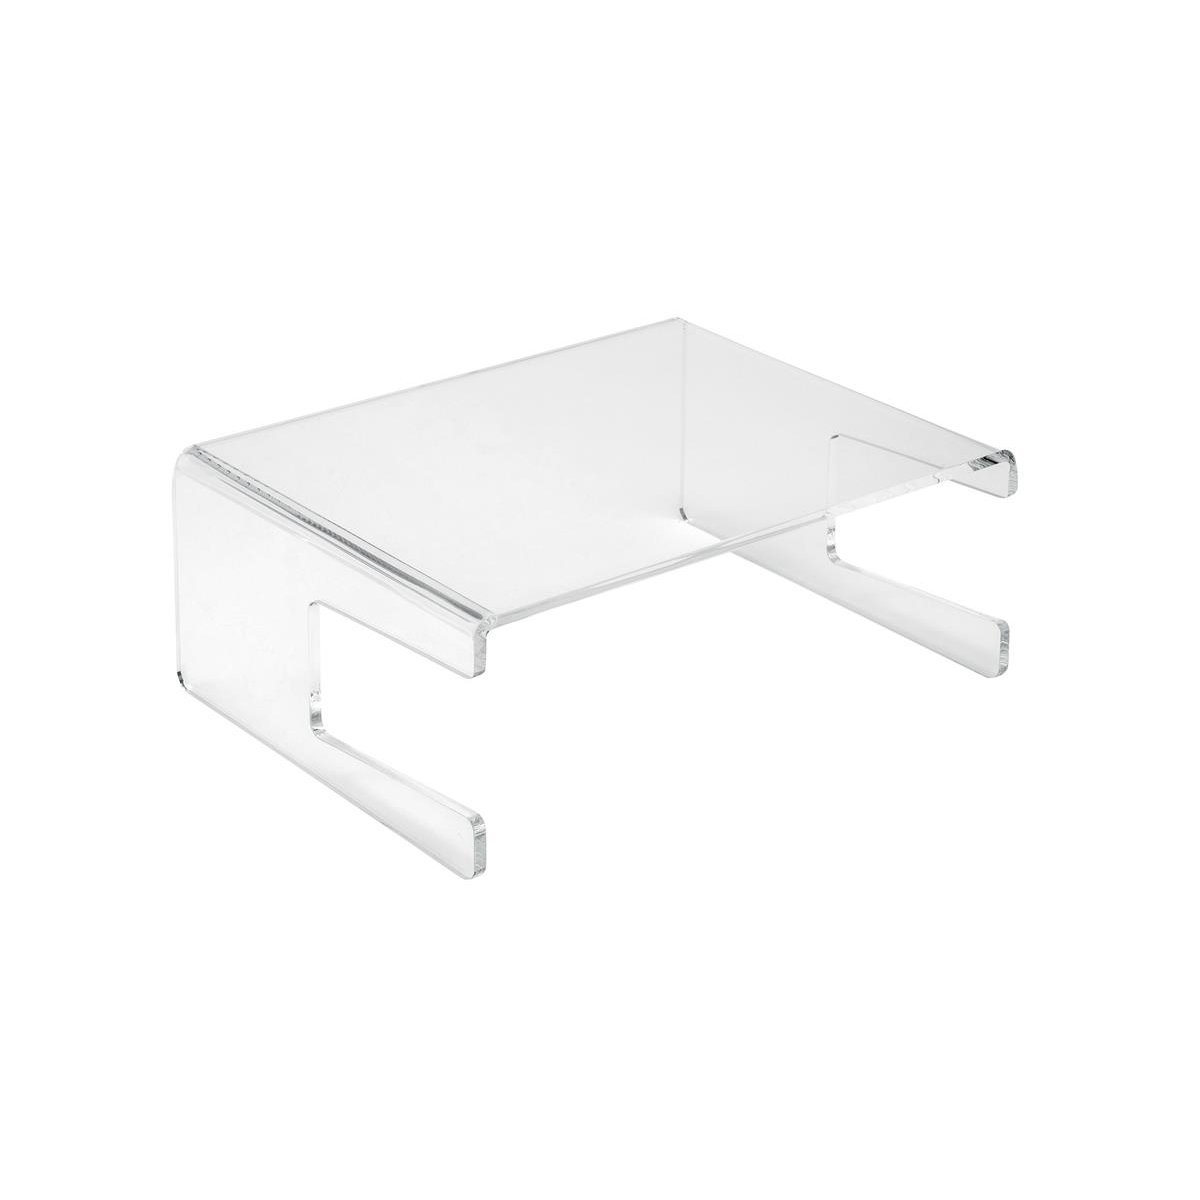 Image for 5 Star Office Monitor Stand Acrylic Capacity 21inch W300xD230xH120mm Clear